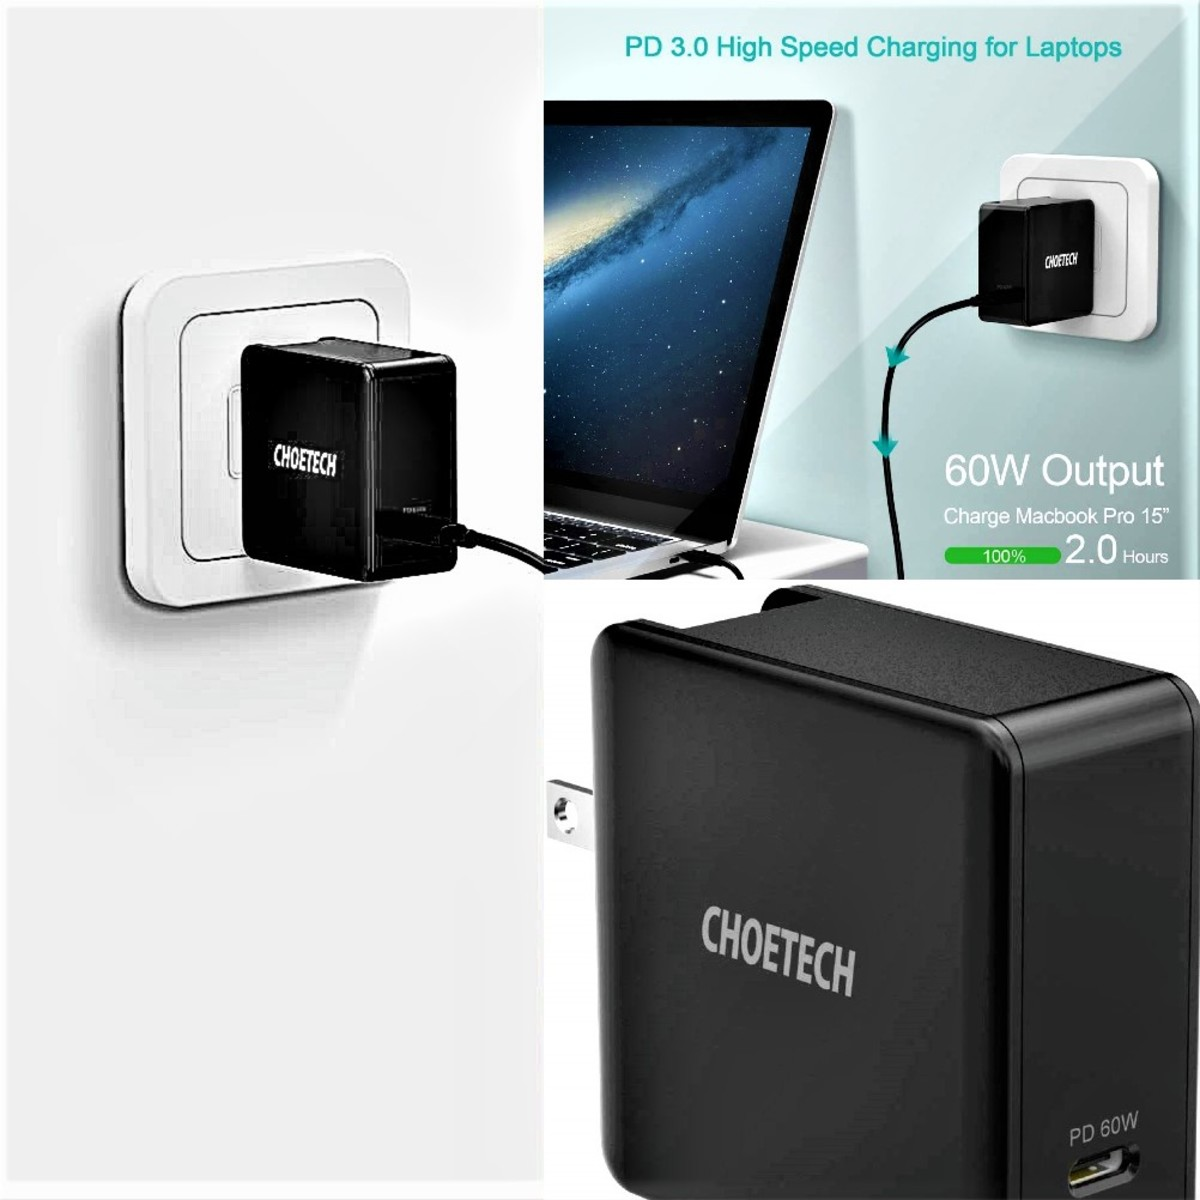 Choetech 60W Charger Review: An Ultra USB-C Adapter That Rapidly Charges Your Devices